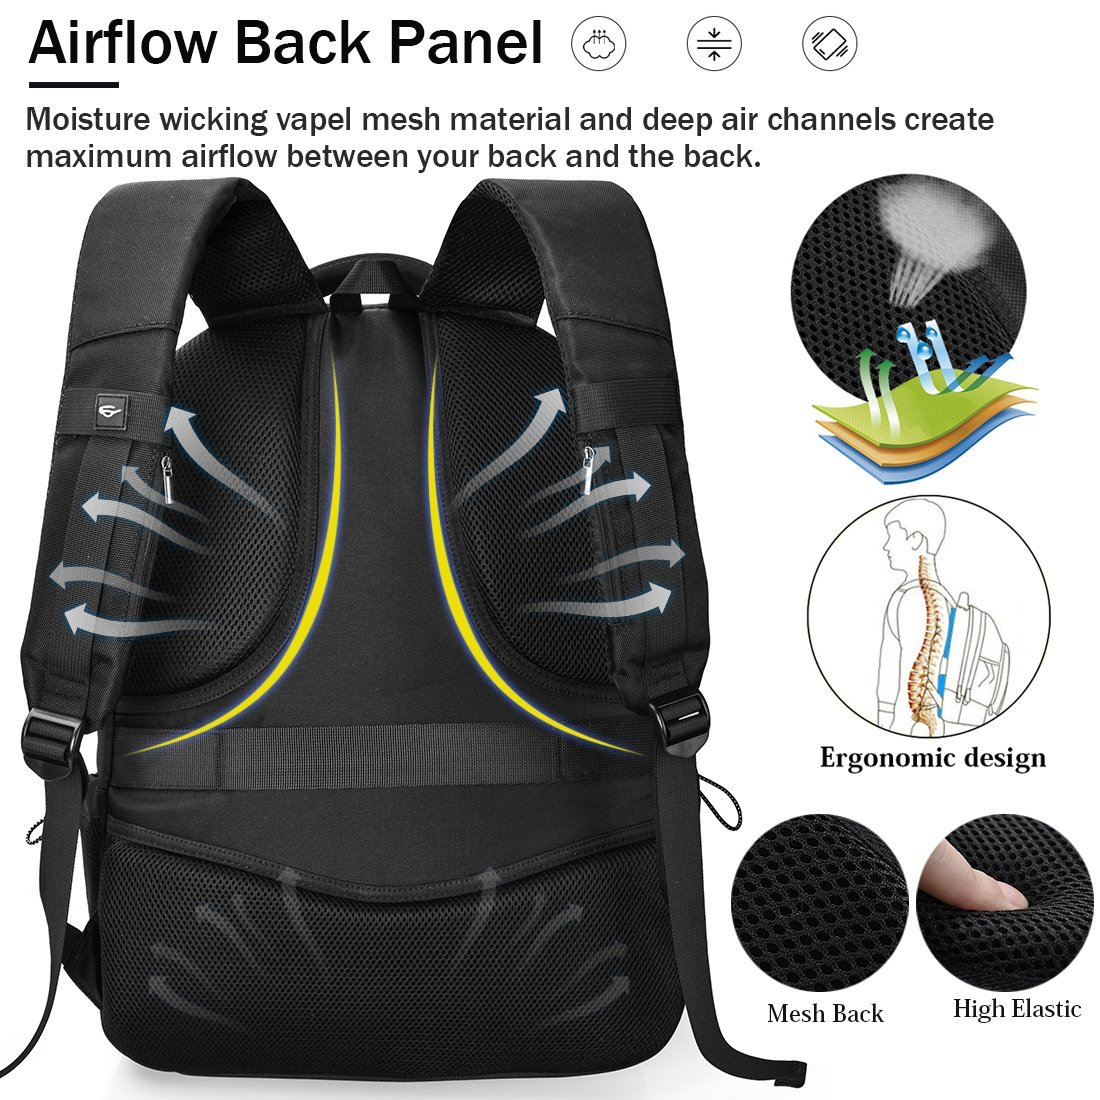 Laptop Backpack 17.3 Inch Travel Anti-theft Waterproof School Backpack Business College Large Capacity Gaming Laptop Backpacks USB Charging Port for Men Women Black by NEWHEY (Image #3)